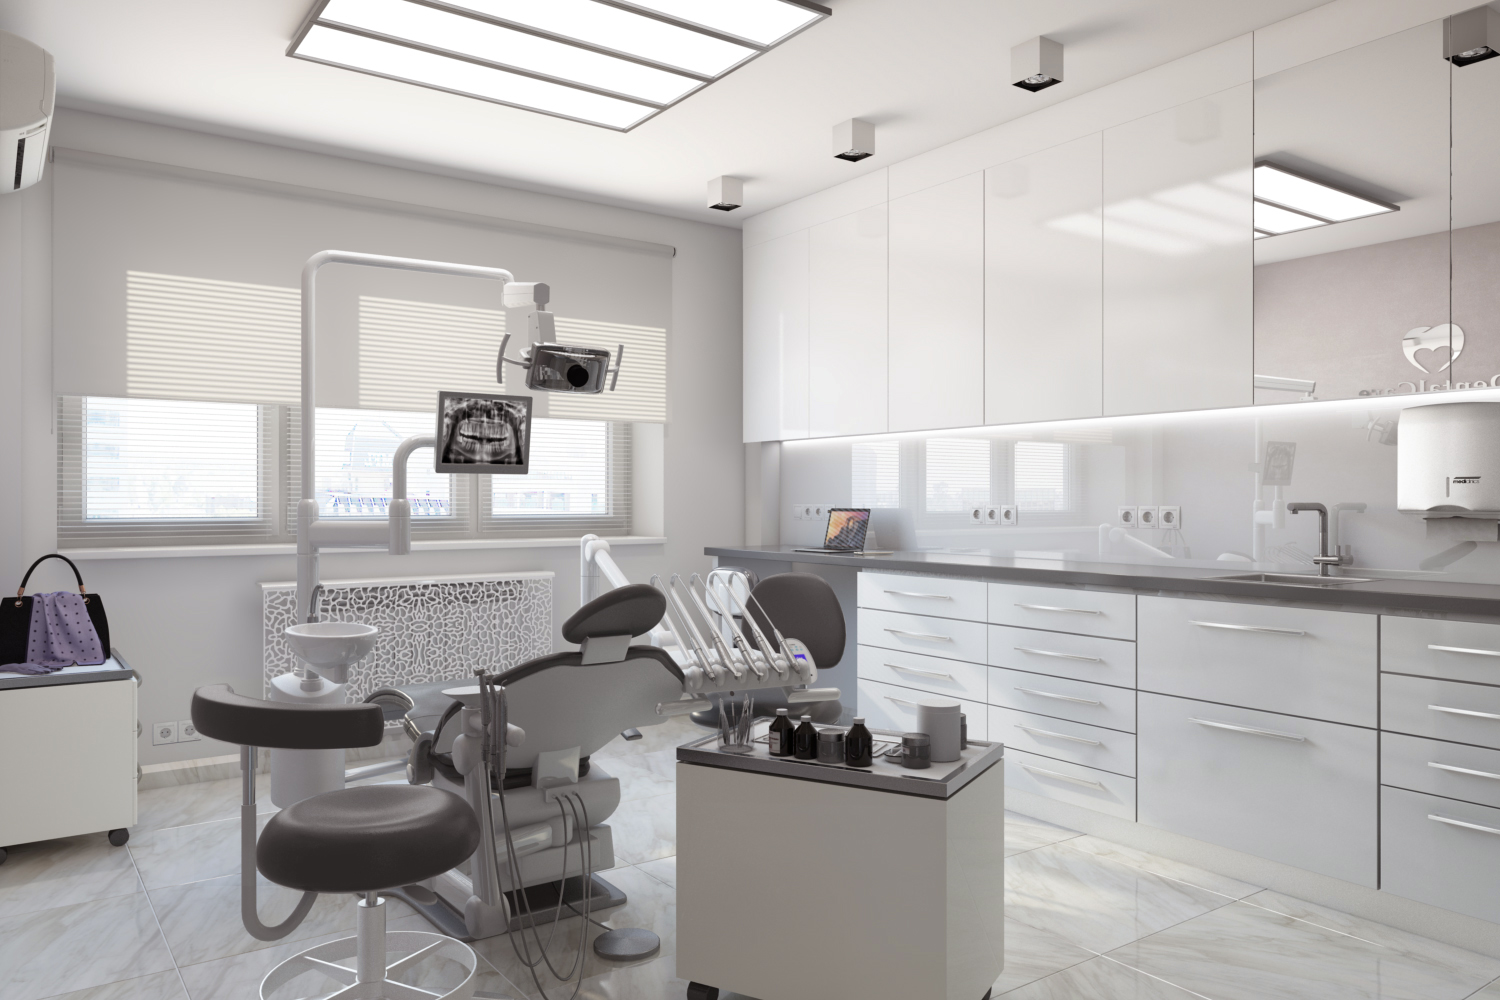 HOSPITAL & MEDICAL FIT-OUT